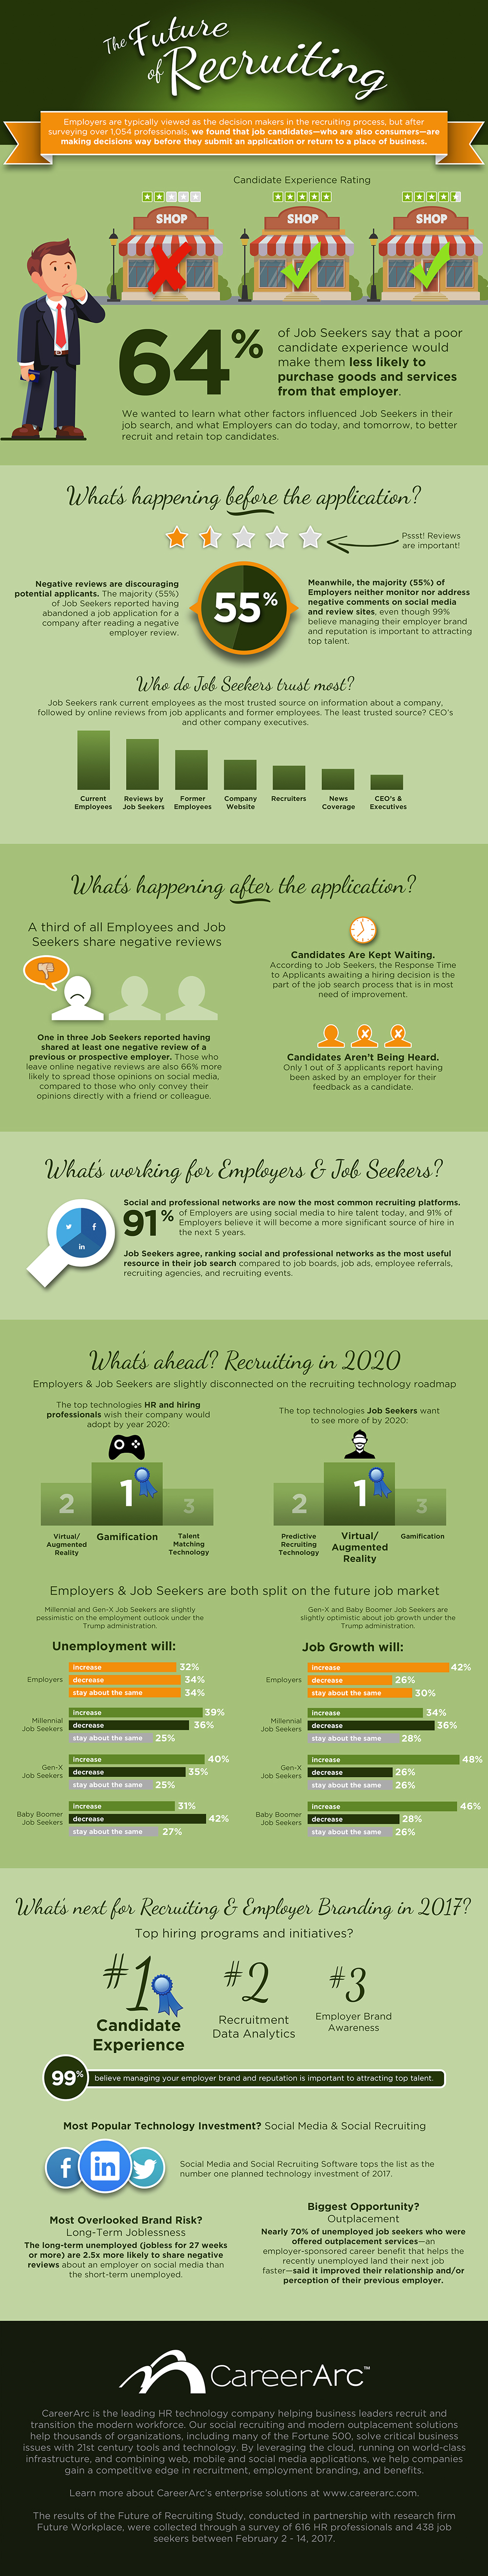 CareerArc Future of Recruiting Infographic